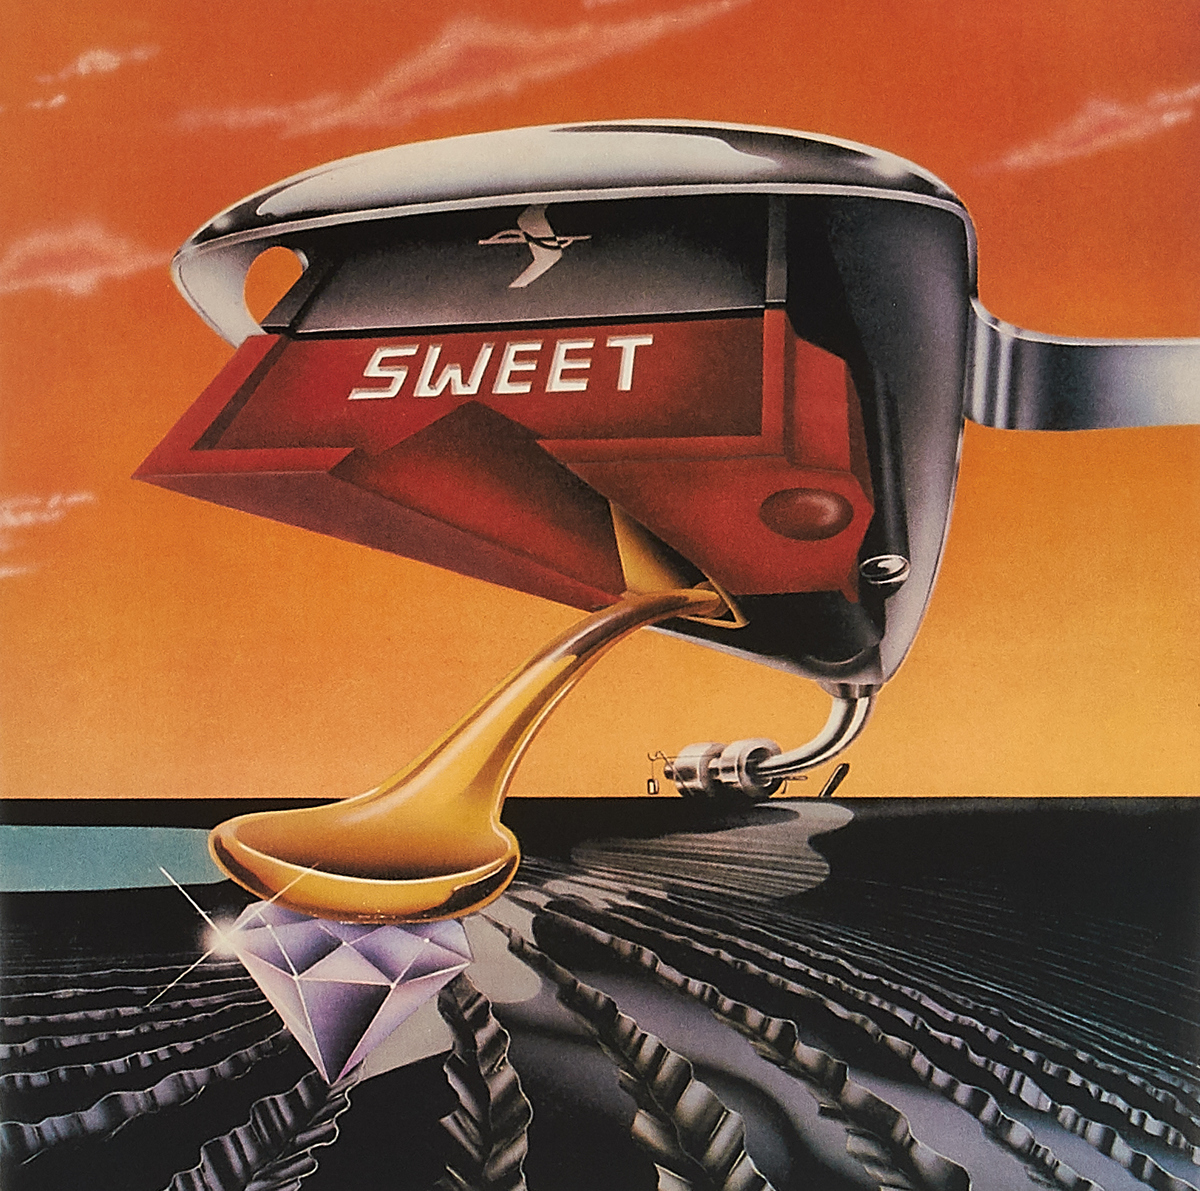 Sweet Sweet. Off The Record (New Vinyl Edition) (LP) sweet sweet give us a wink new vinyl edition lp